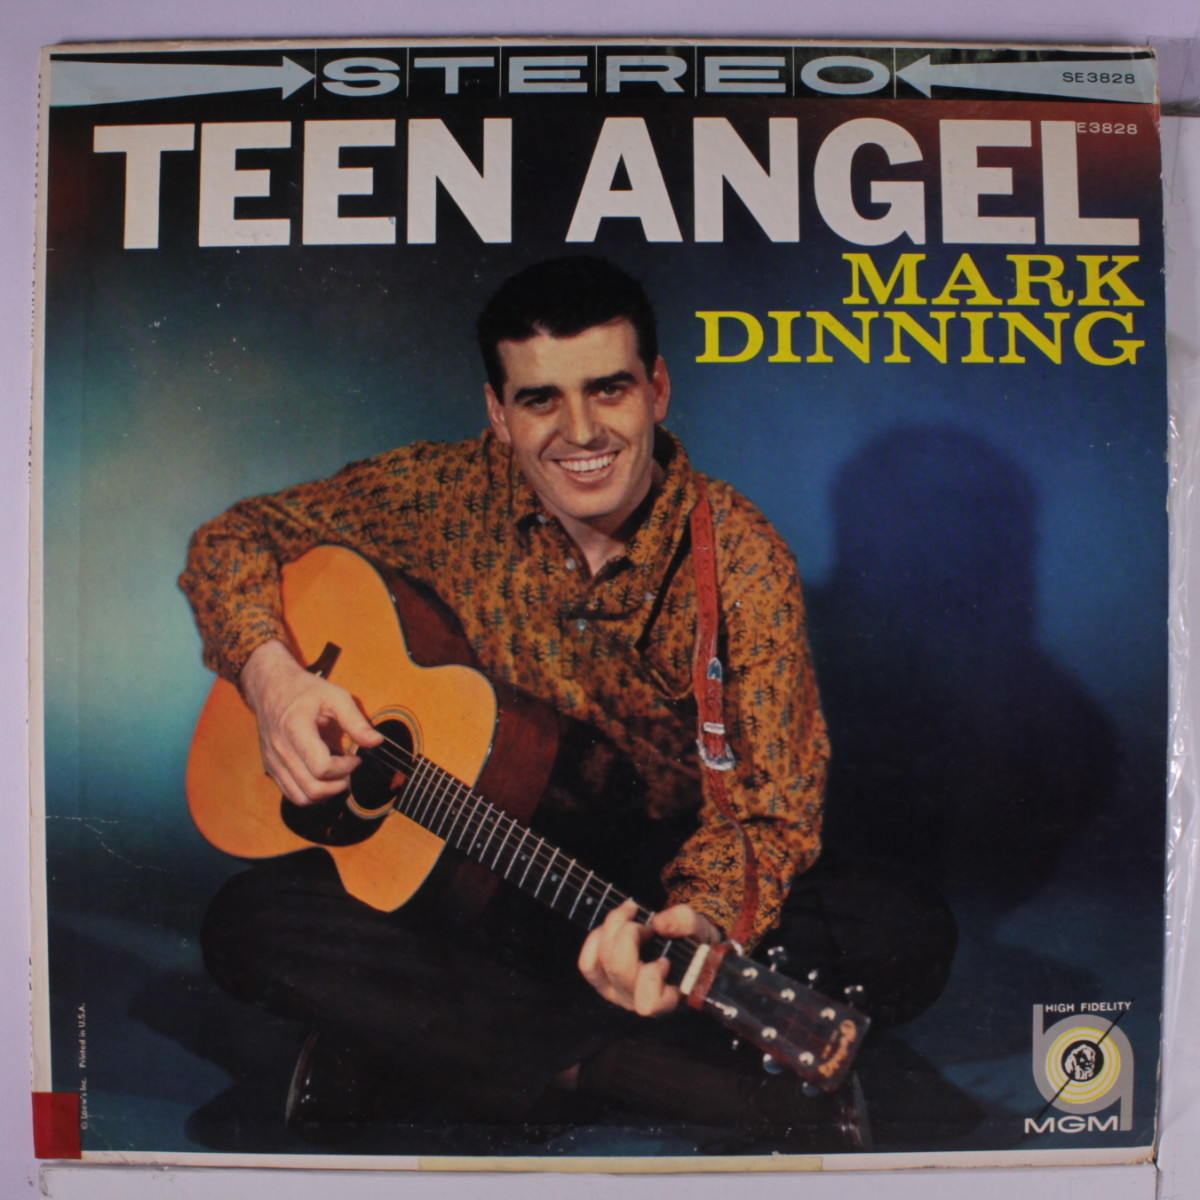 Mark Dinning, Teen Angel album cover.